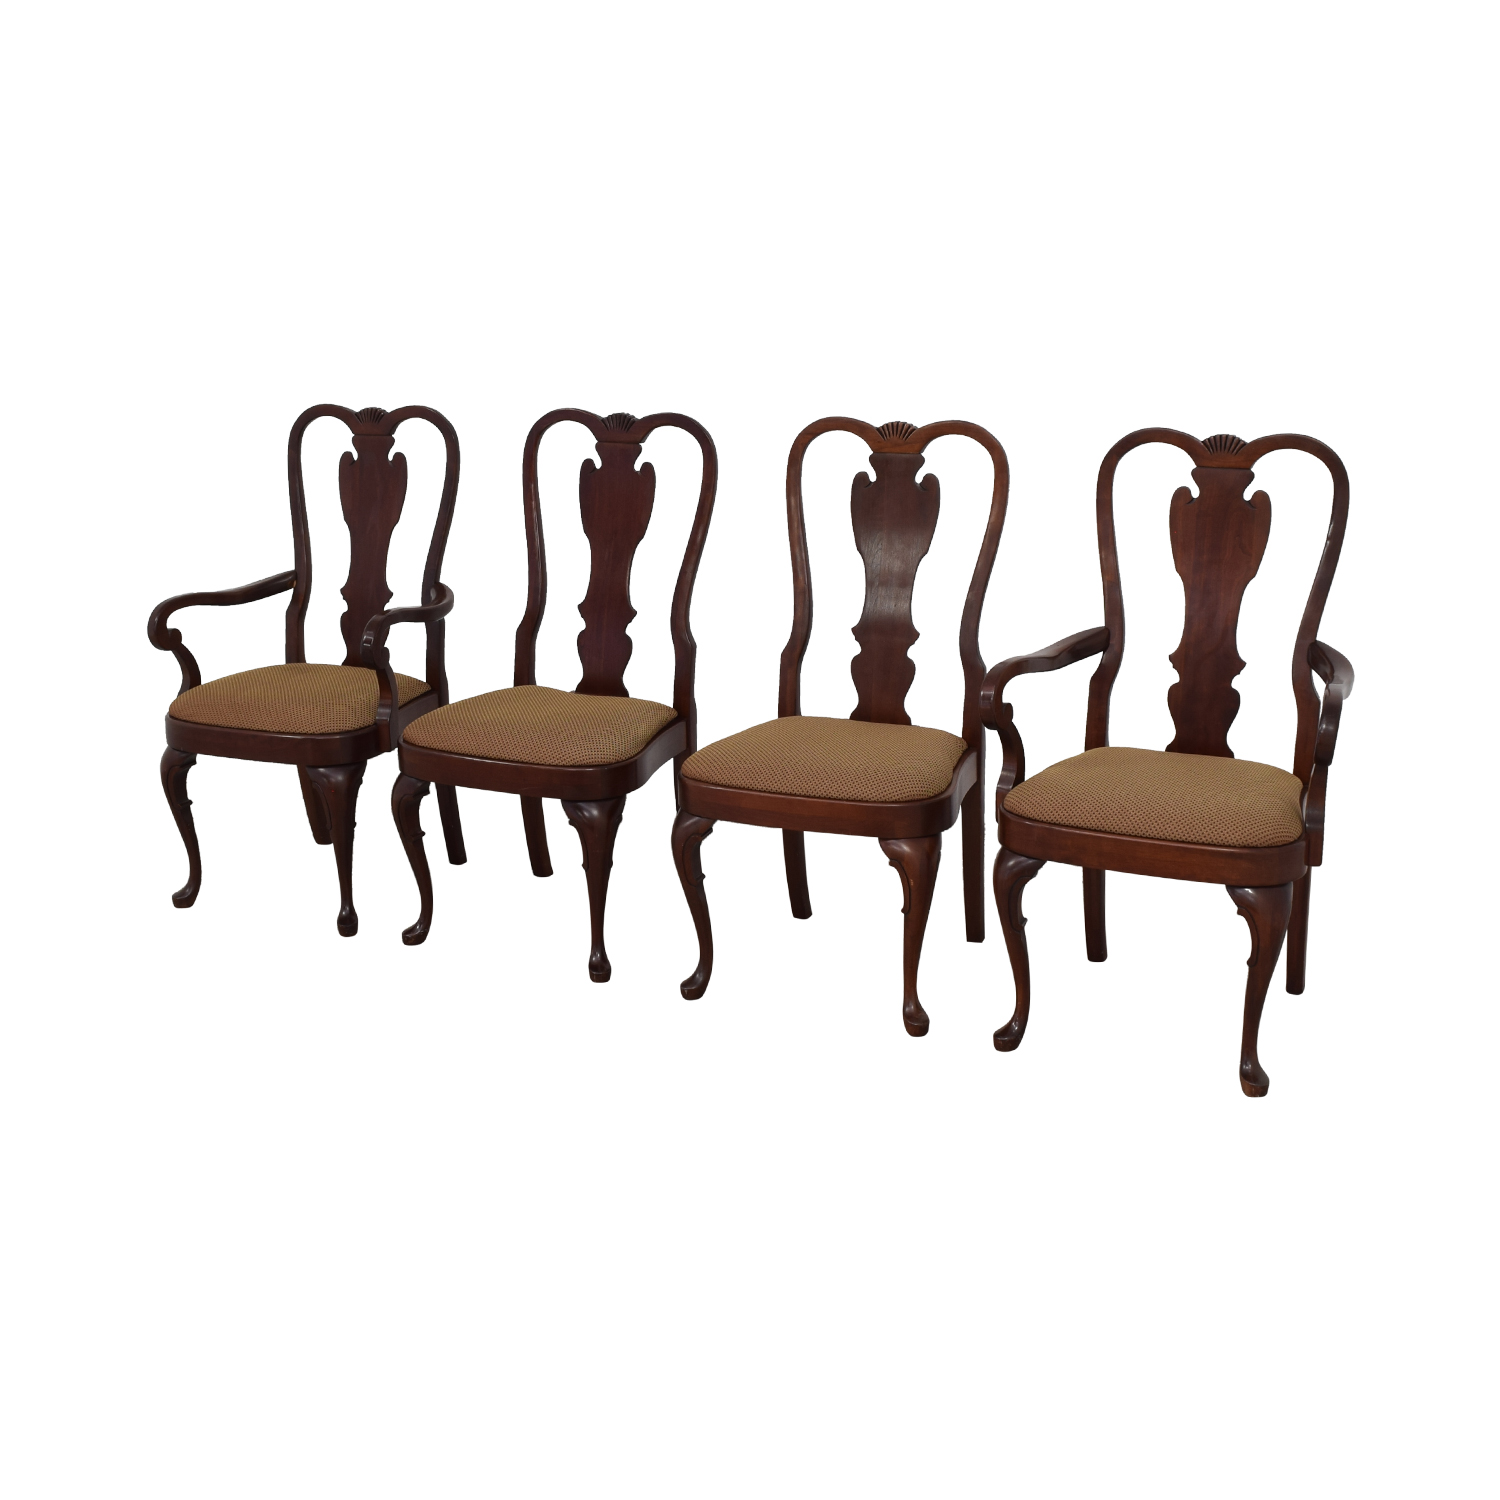 Pennsylvania House Pennsylvania House Dining Chairs dimensions